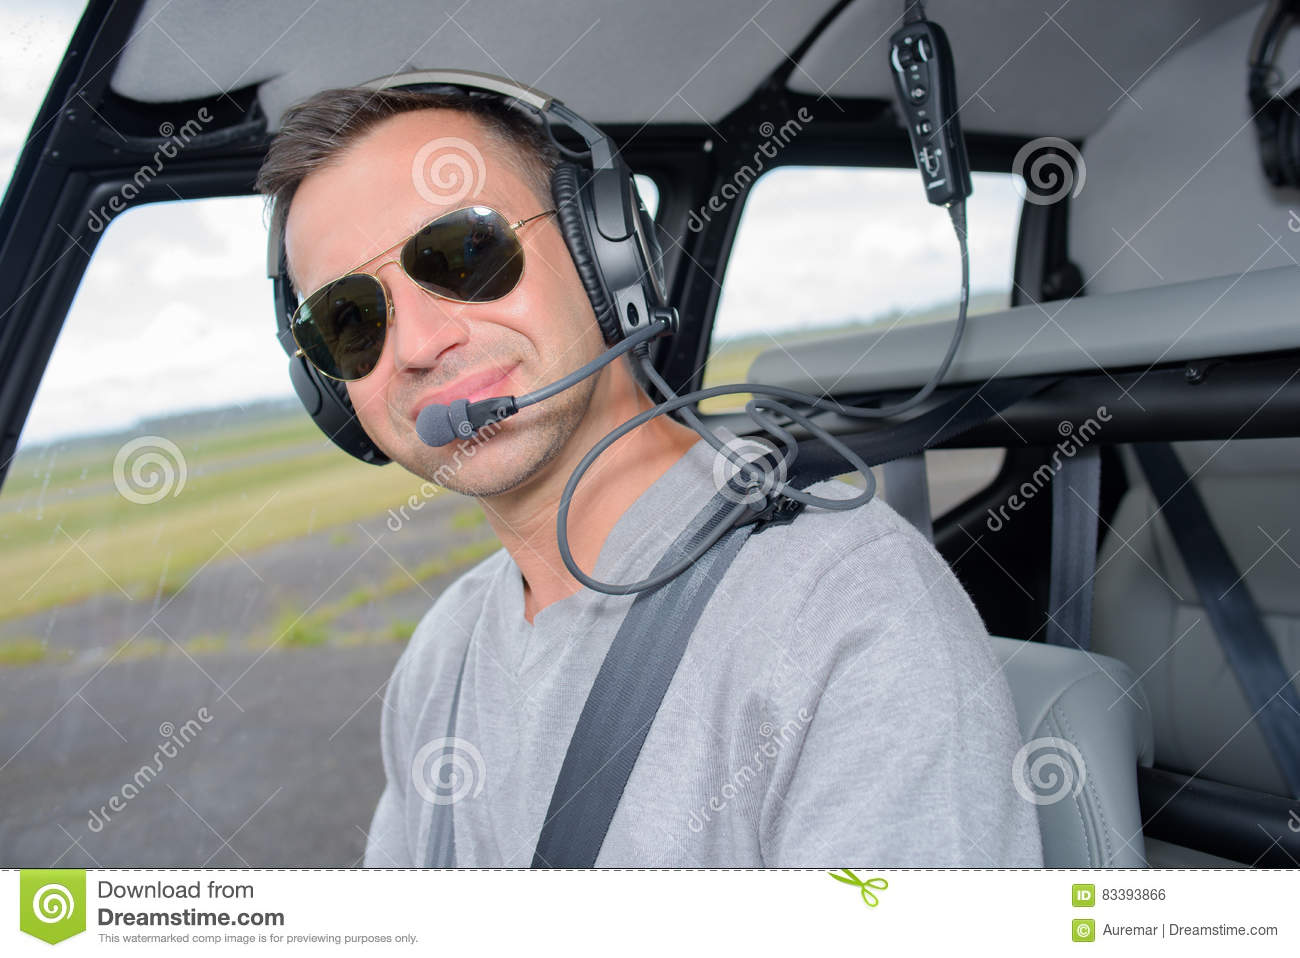 cfb1269be9 Portrait Pilot Wearing Sunglasses Stock Photo - Image of adult ...